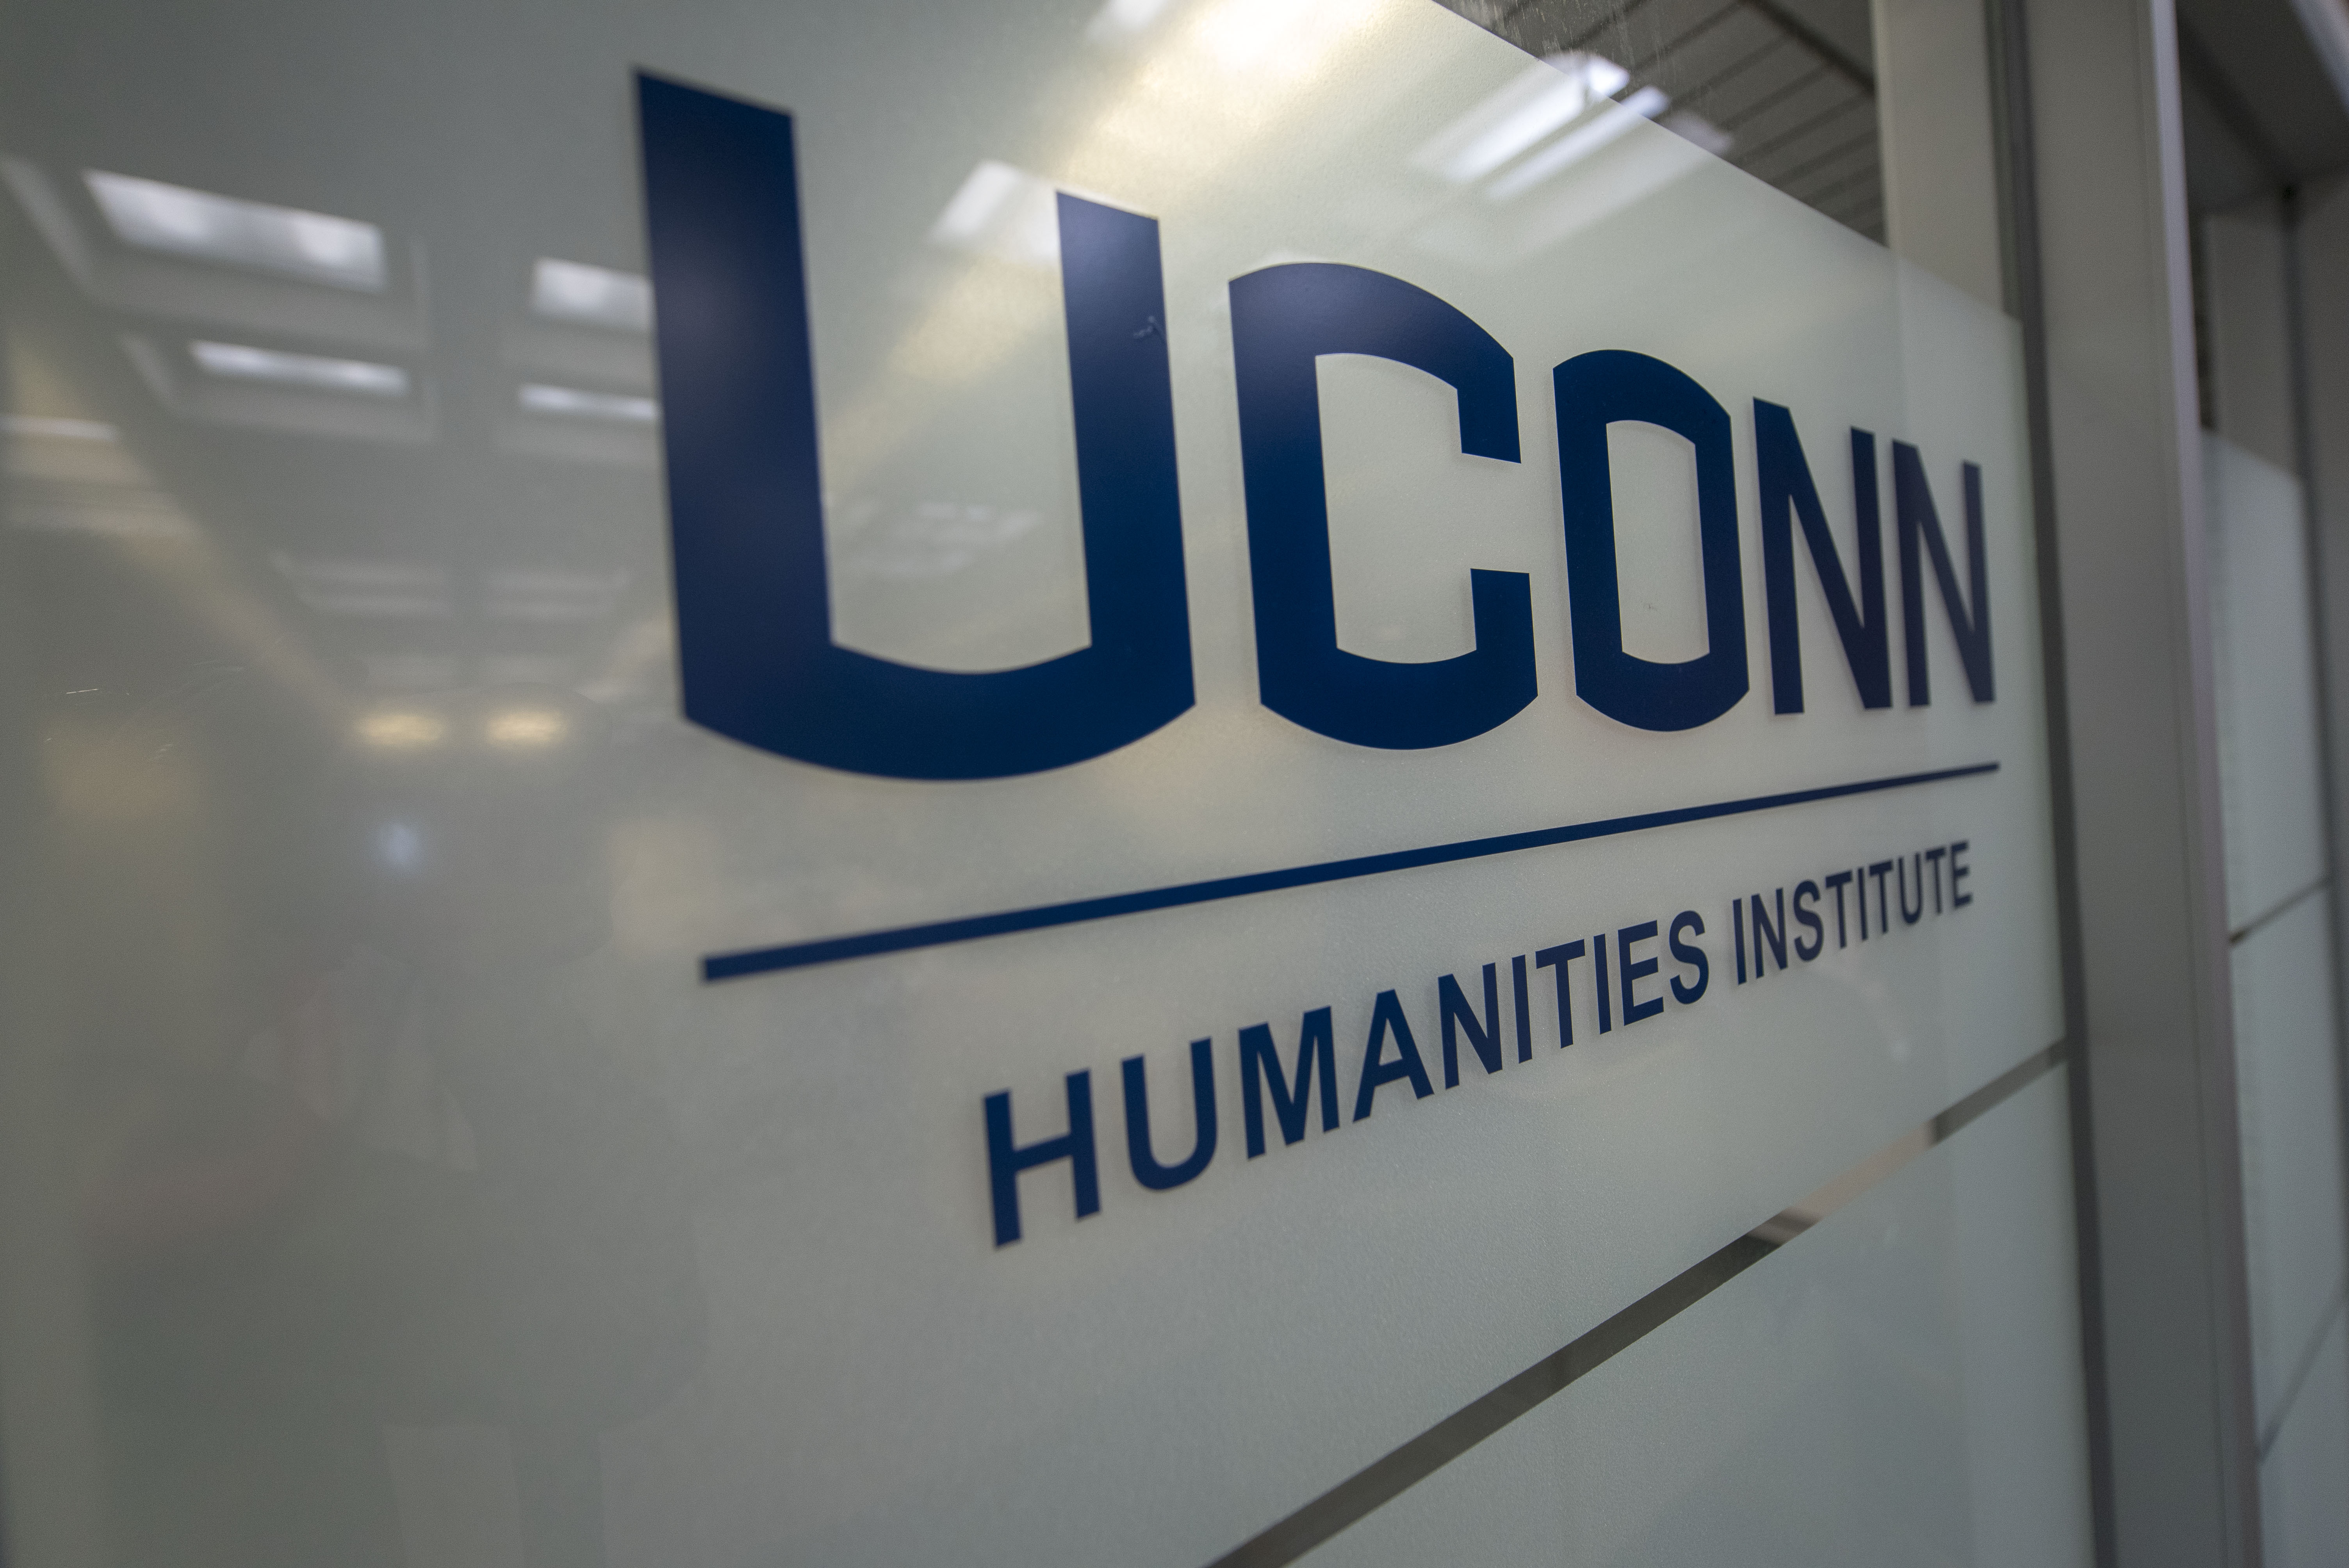 The logo of the UConn Humanities Institute